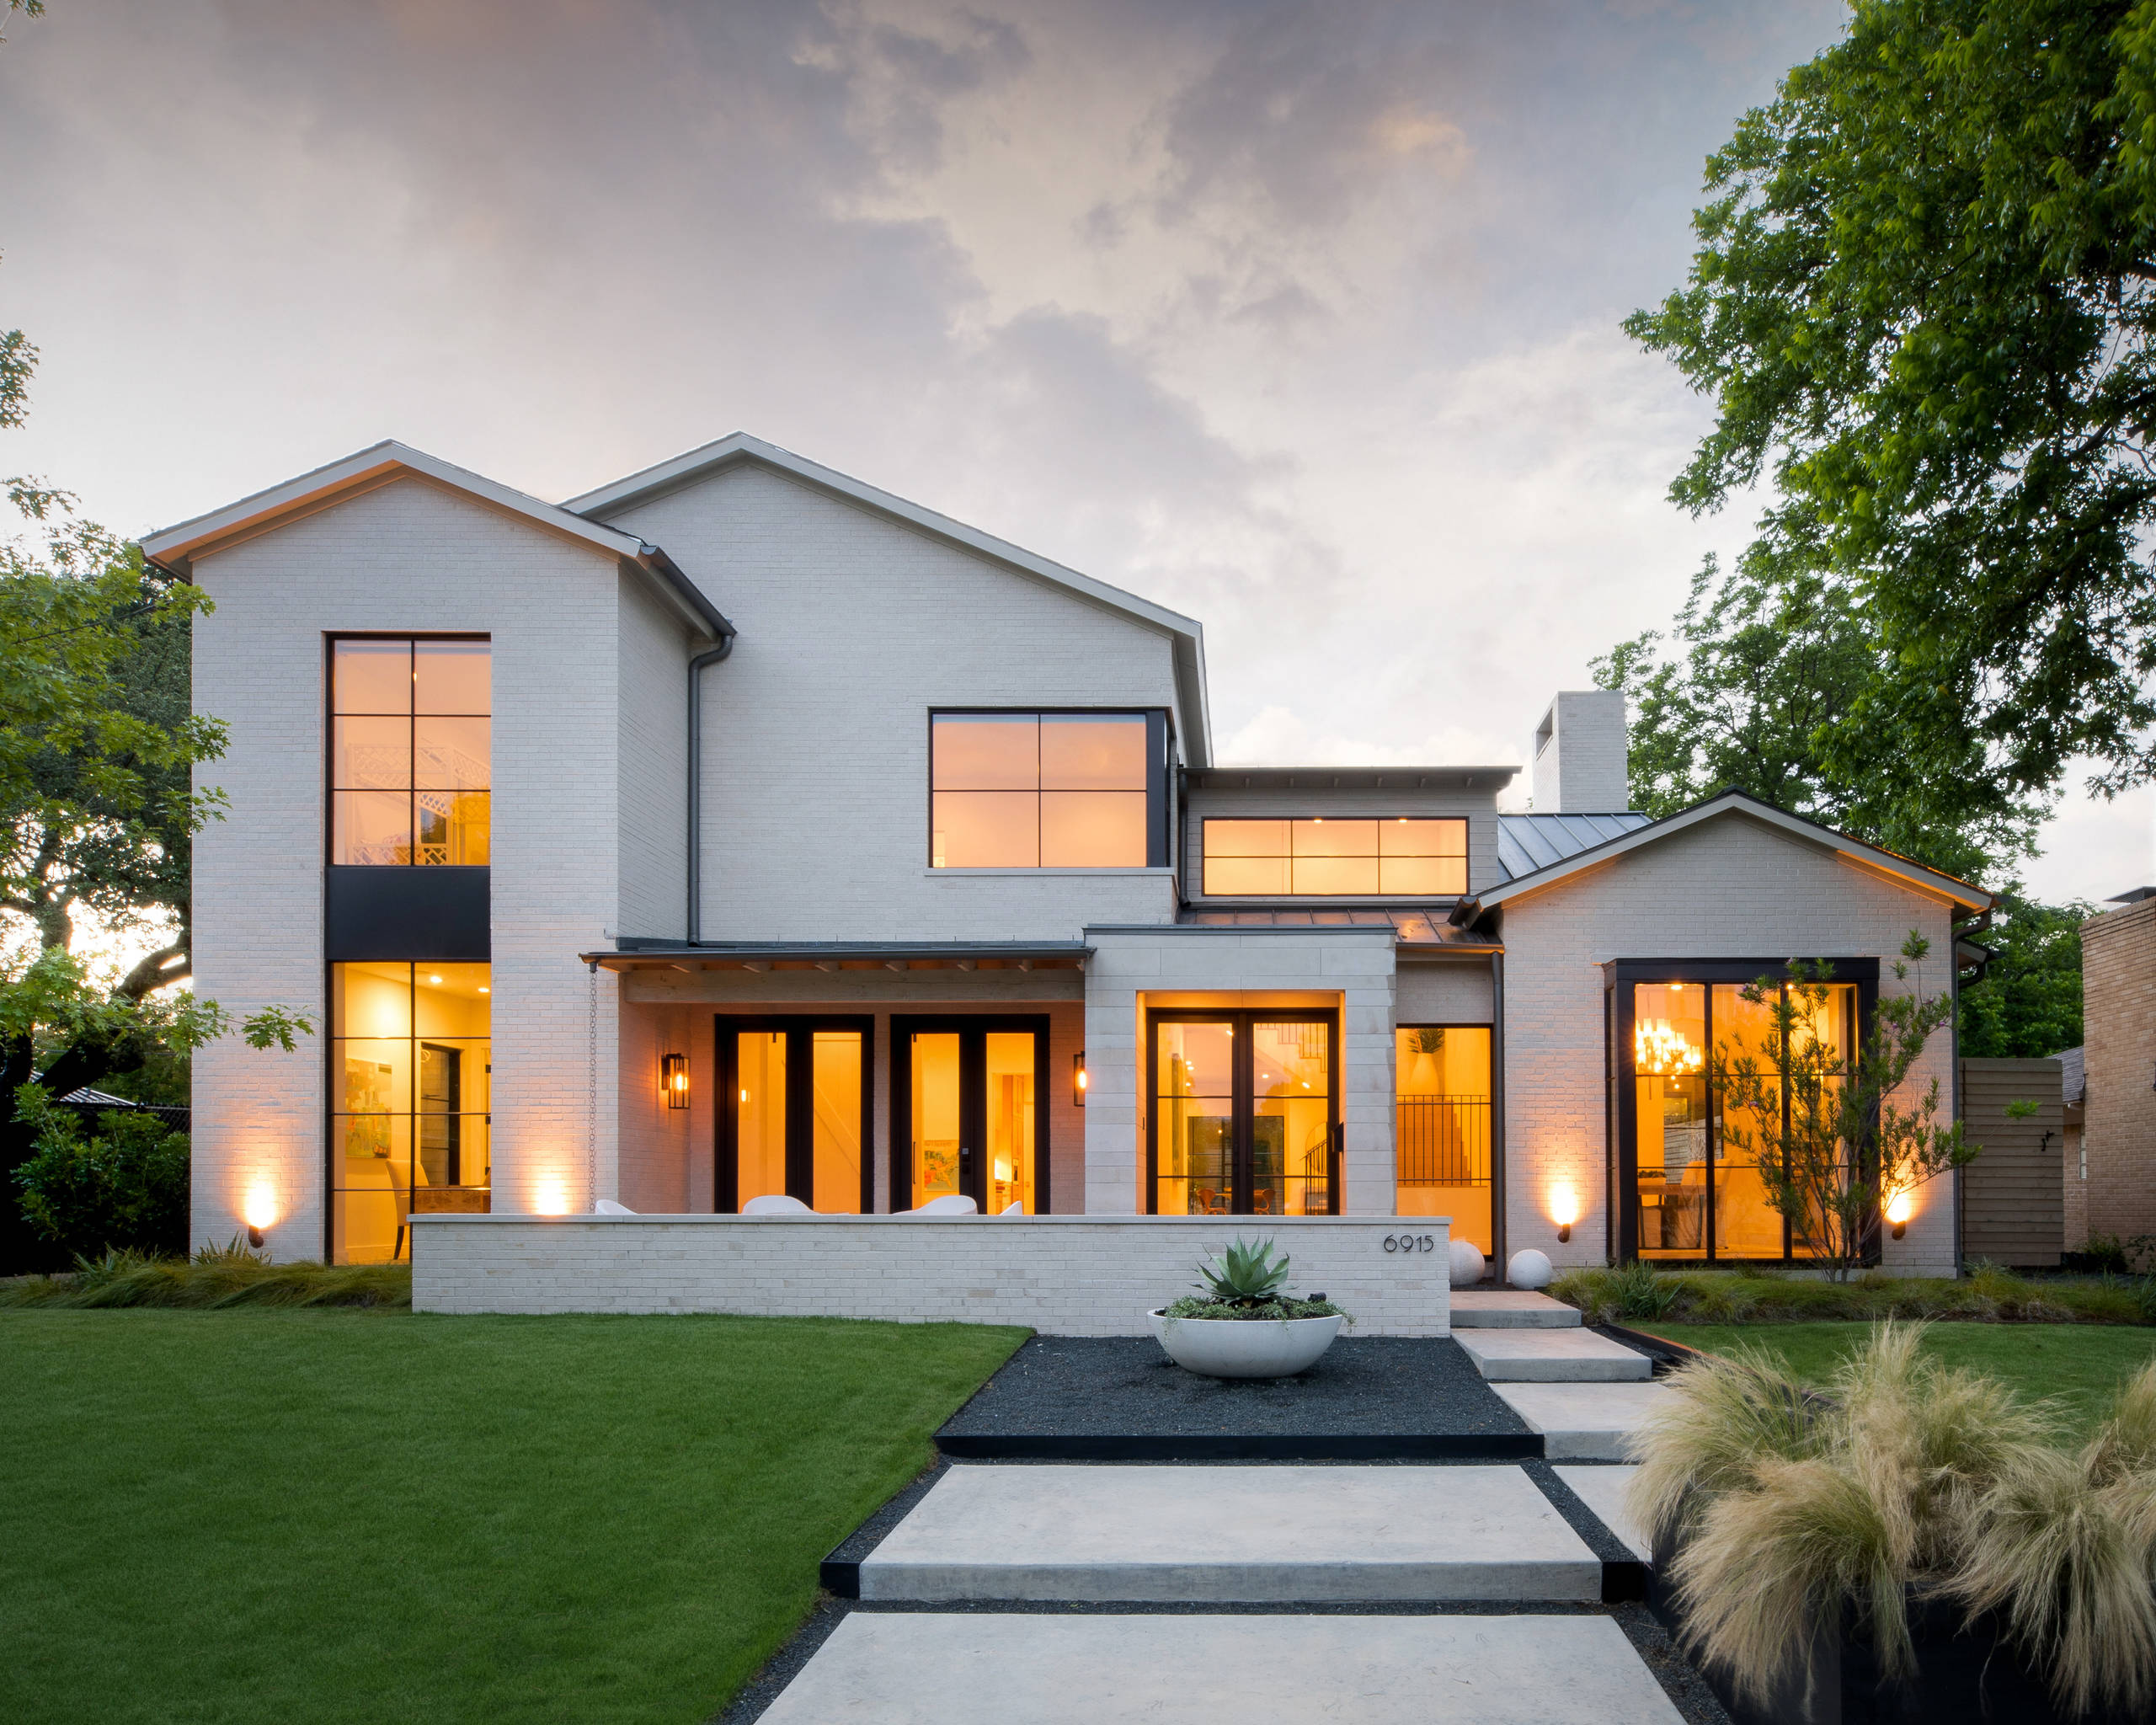 75 Beautiful Stone Exterior Home Pictures Ideas January 2021 Houzz